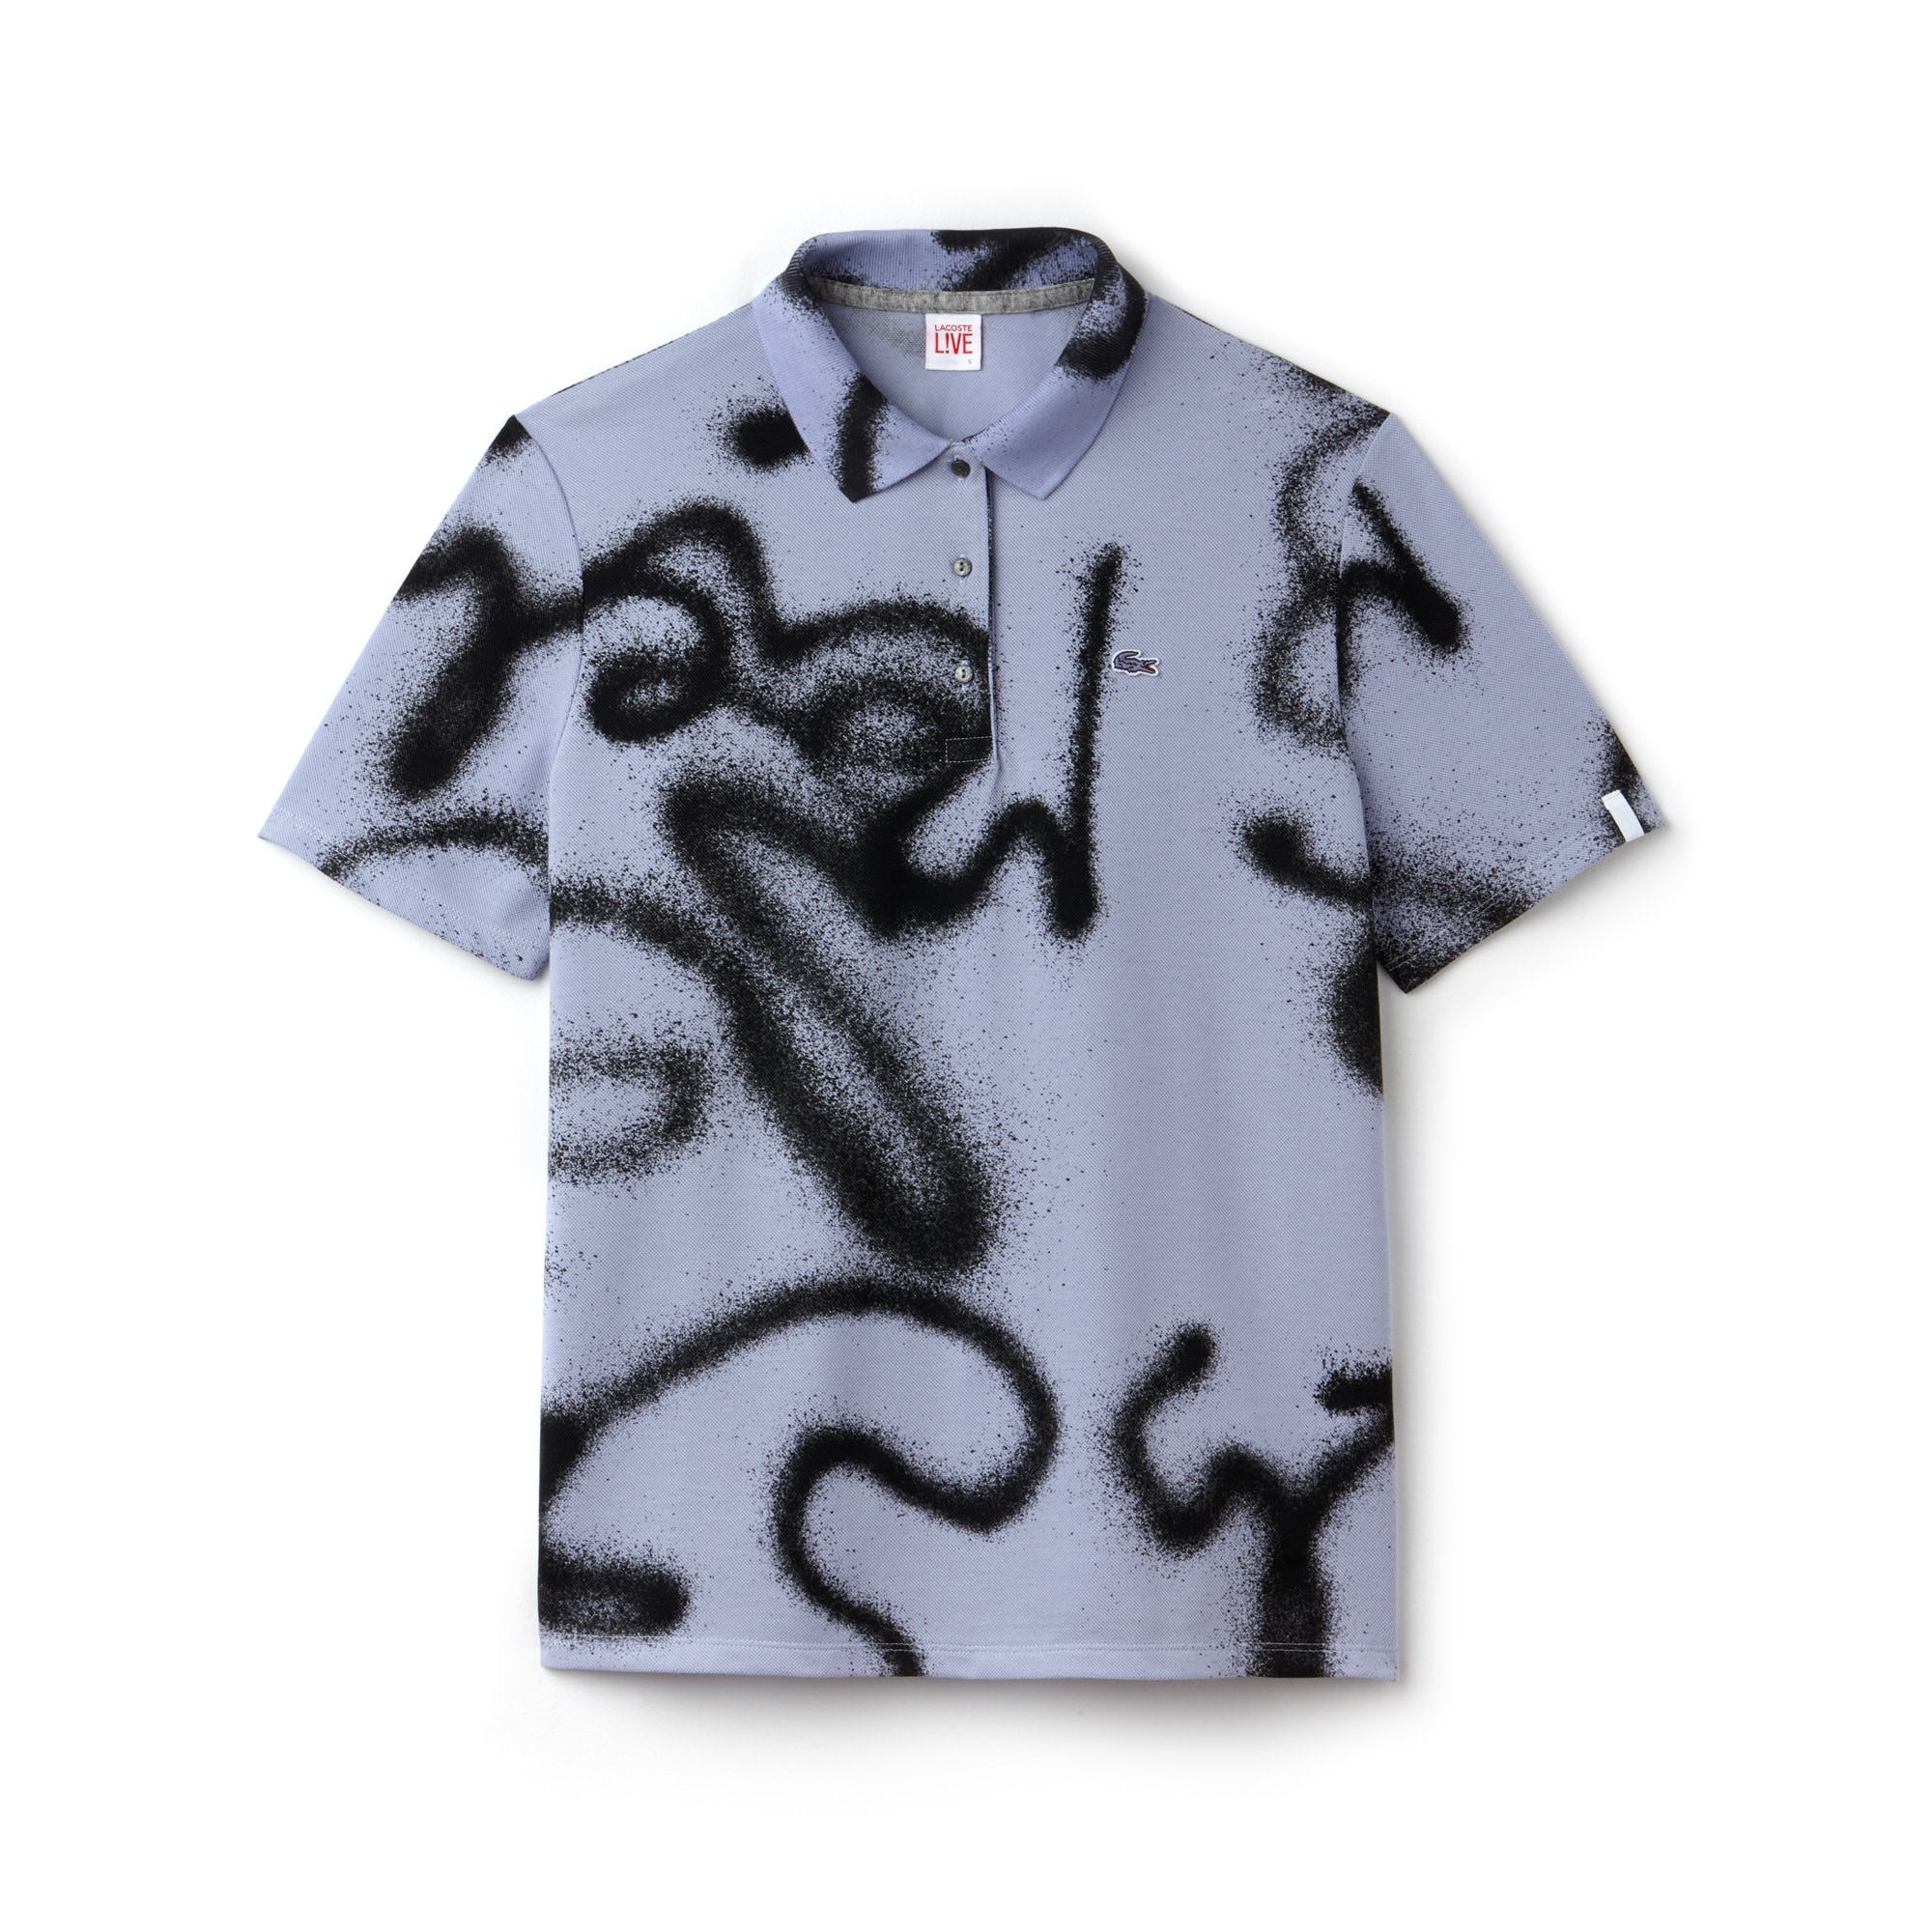 Women's LIVE Graffiti Print Piqué Polo